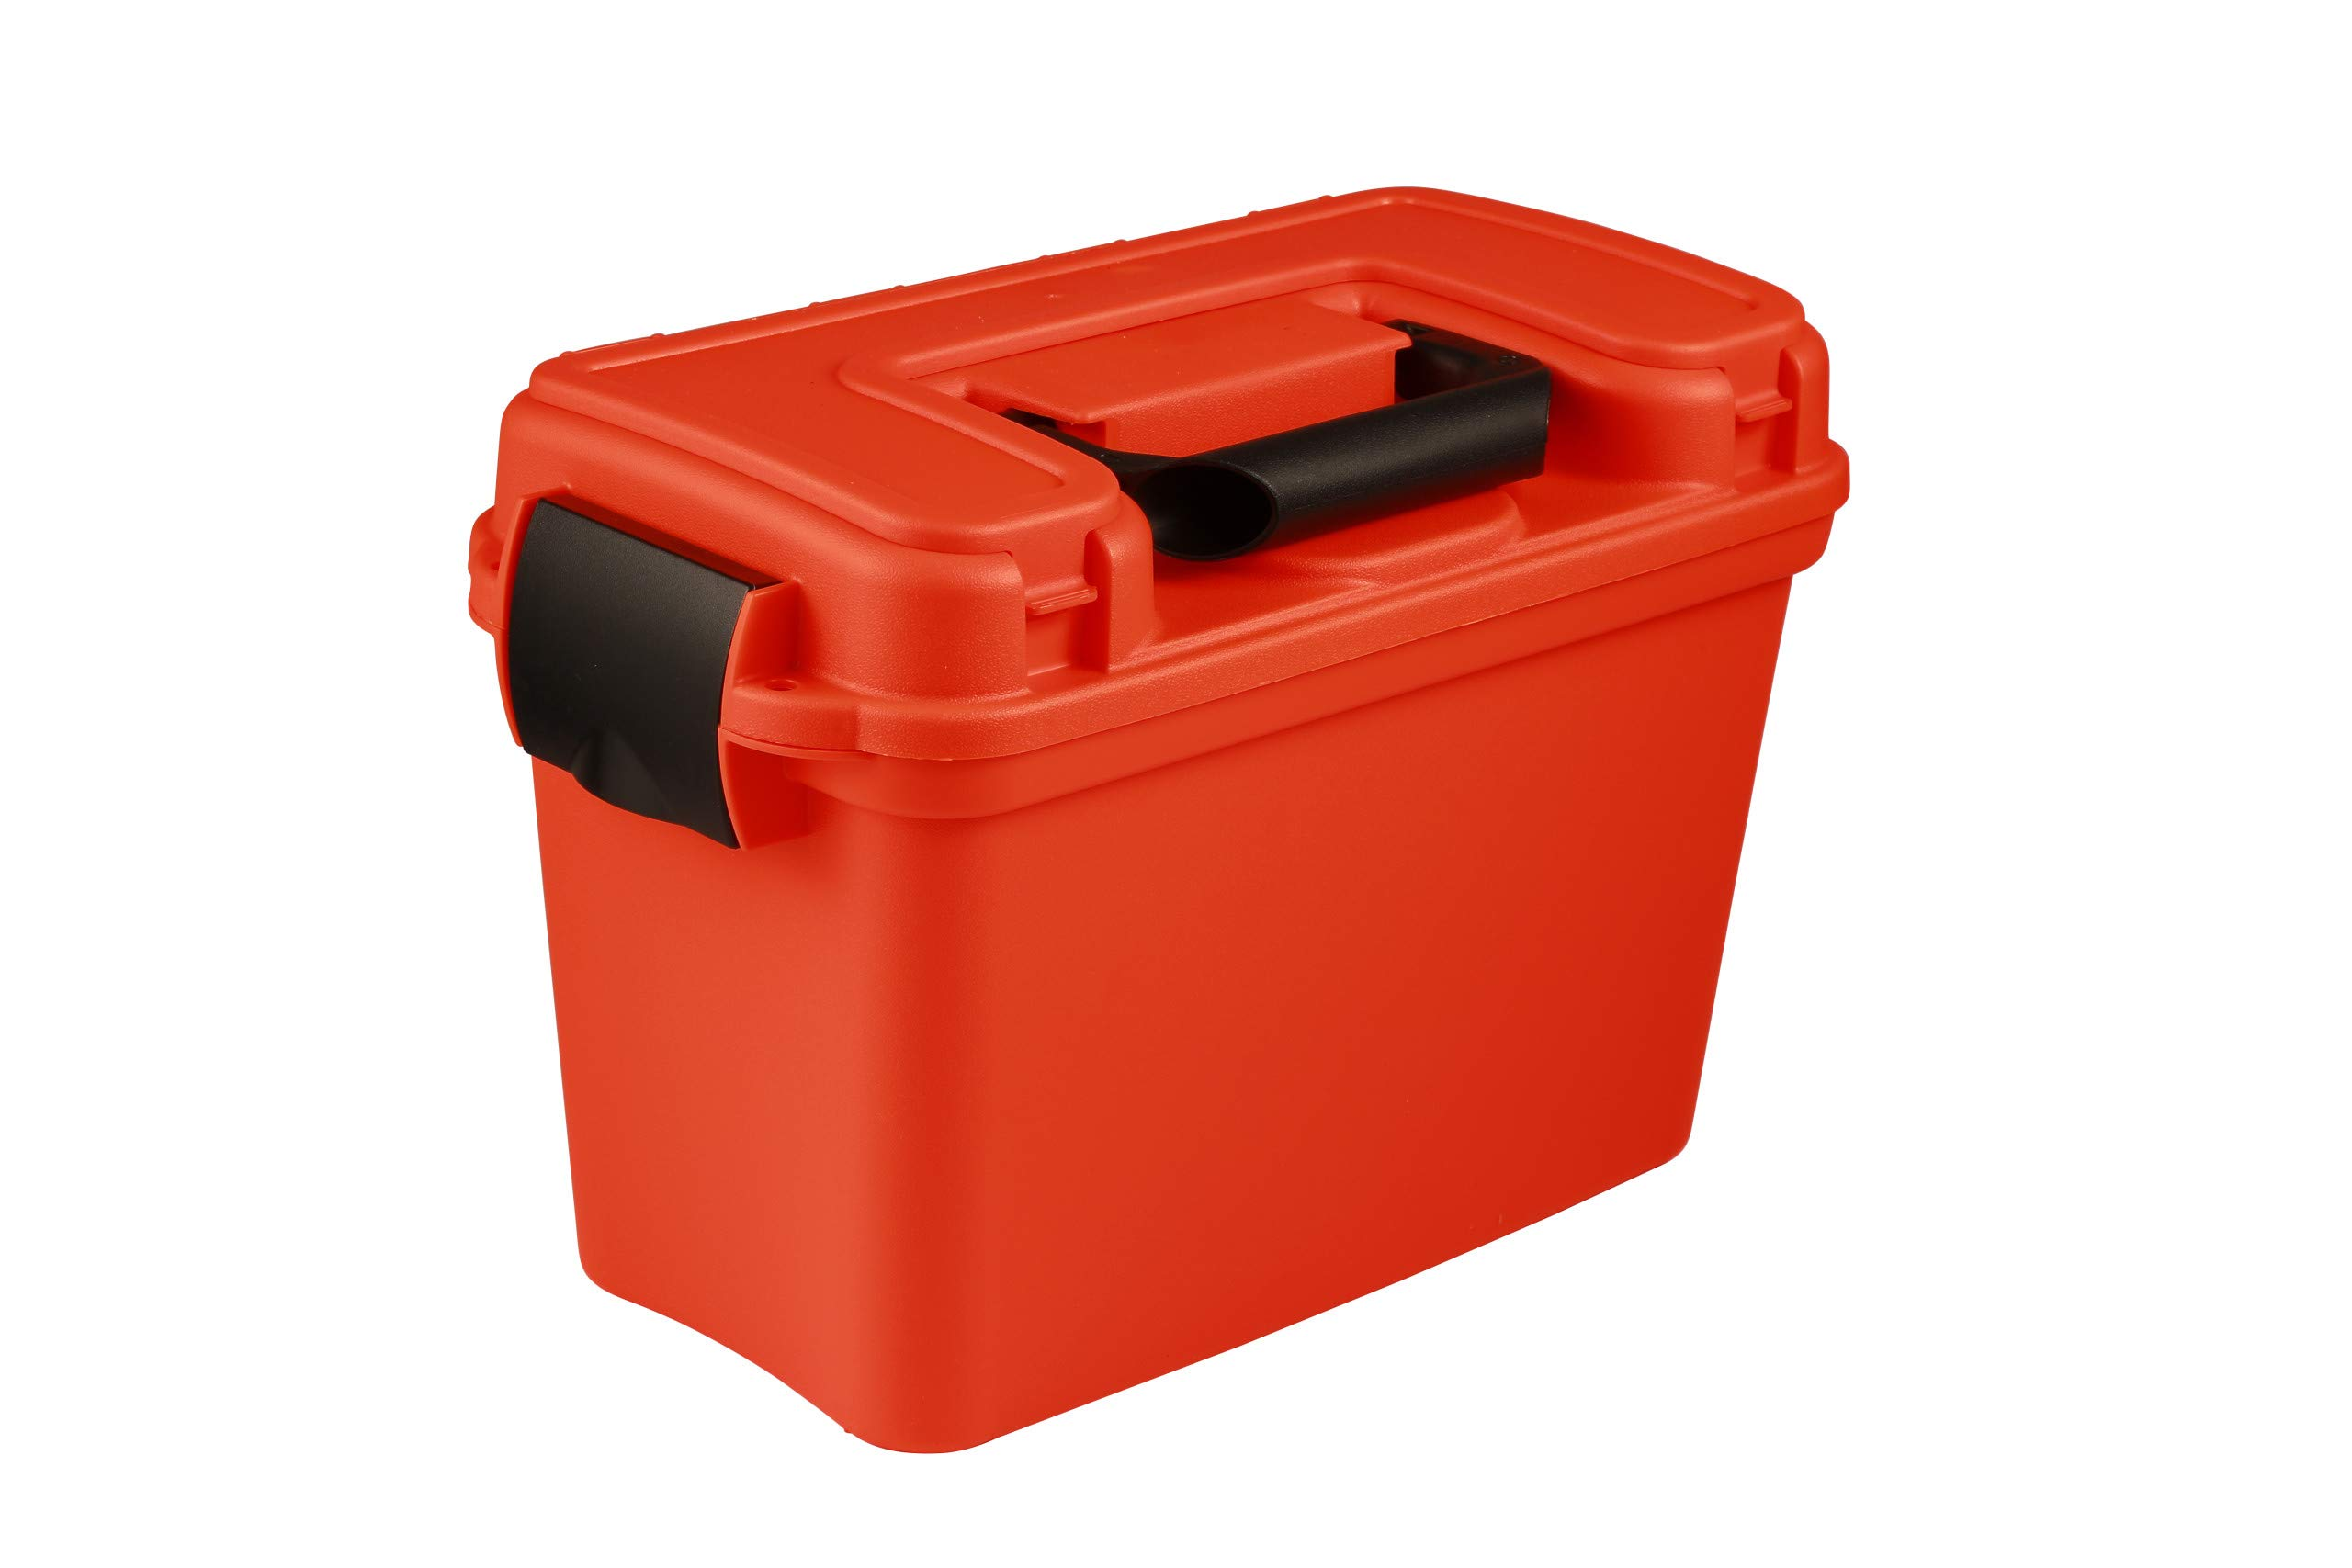 attwood 11834-1 Waterproof Boater's Dry Box, Bright Safety Orange by attwood